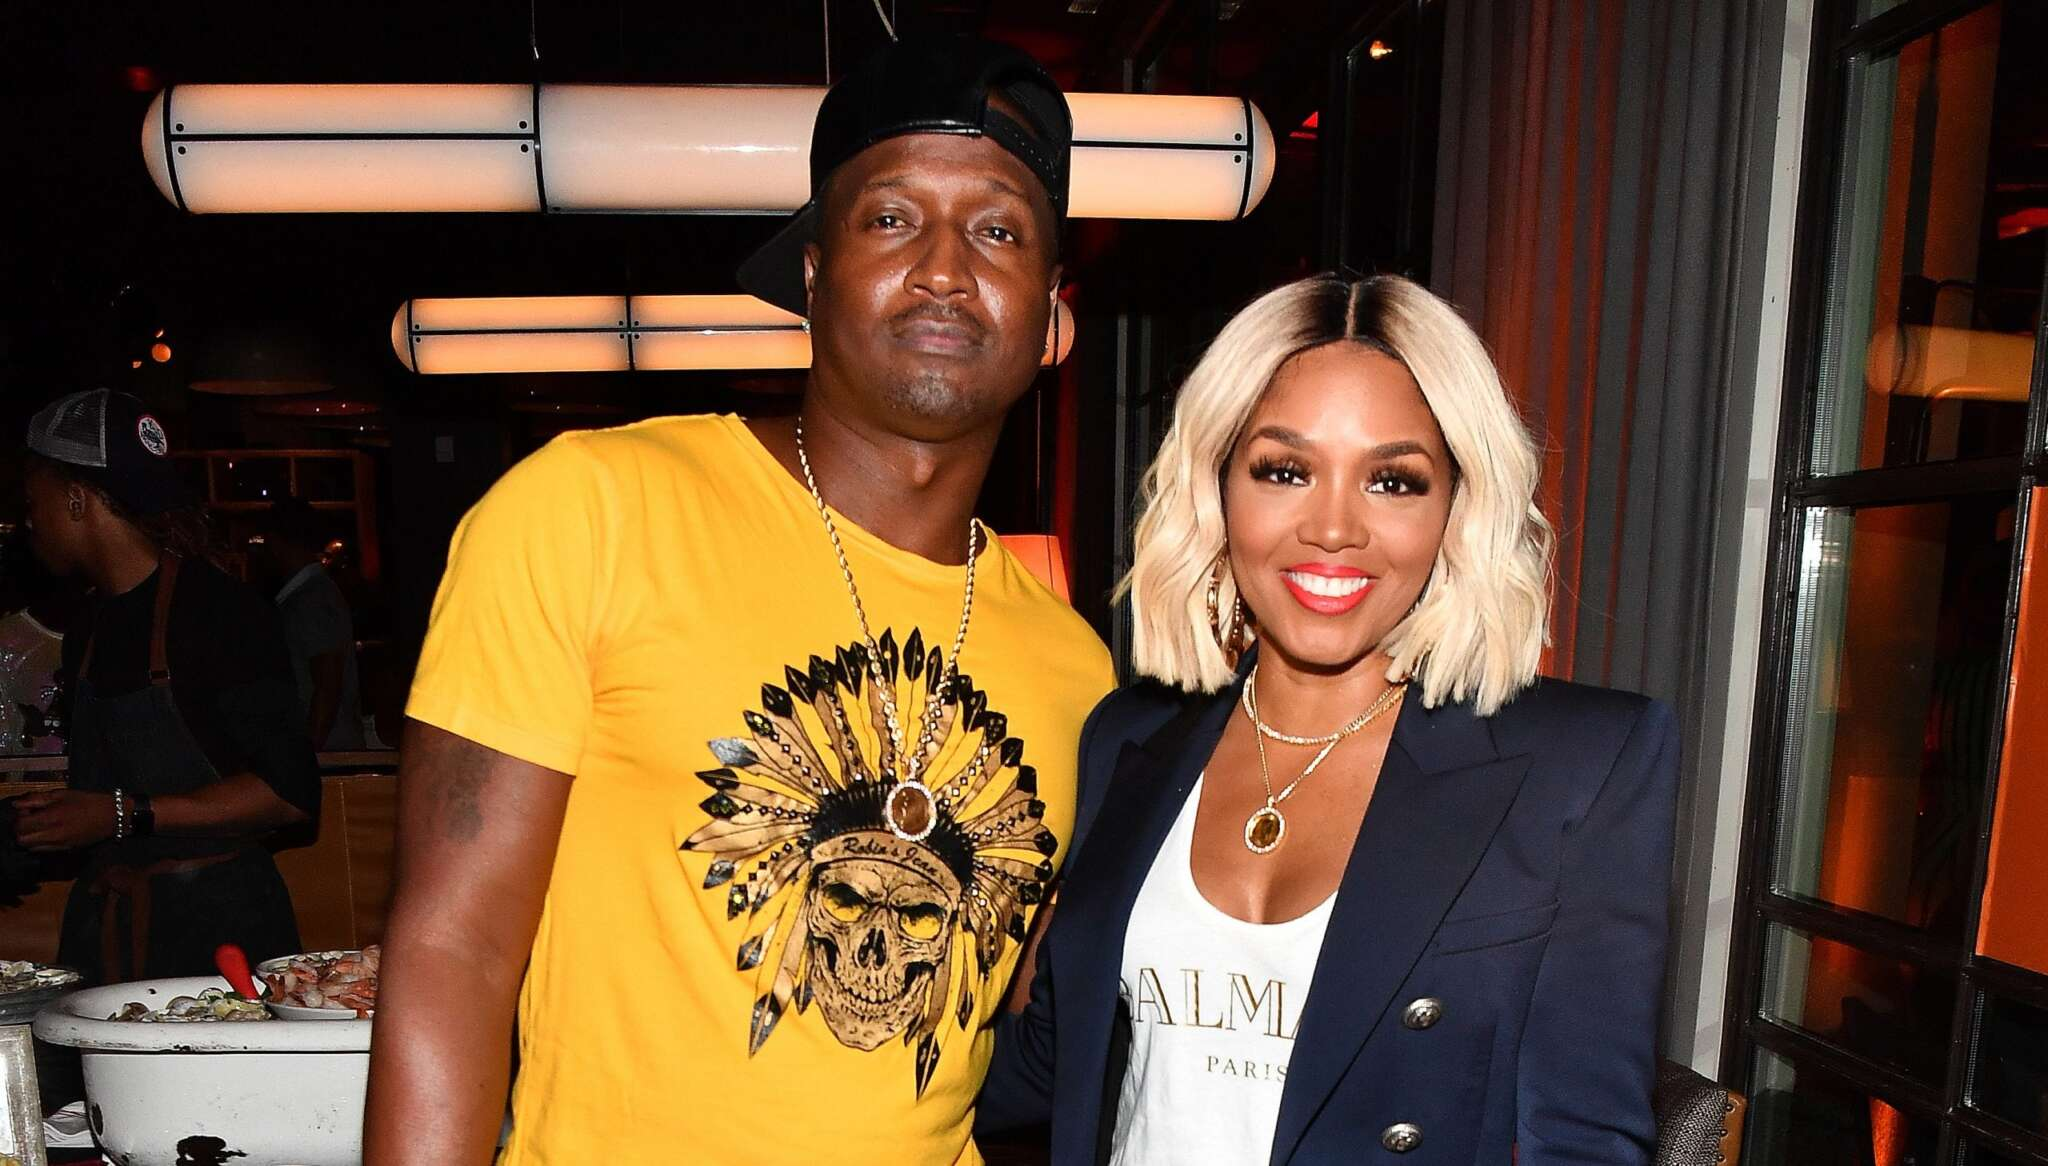 rasheeda-frosts-latest-video-has-fans-in-awe-see-her-latest-look-here